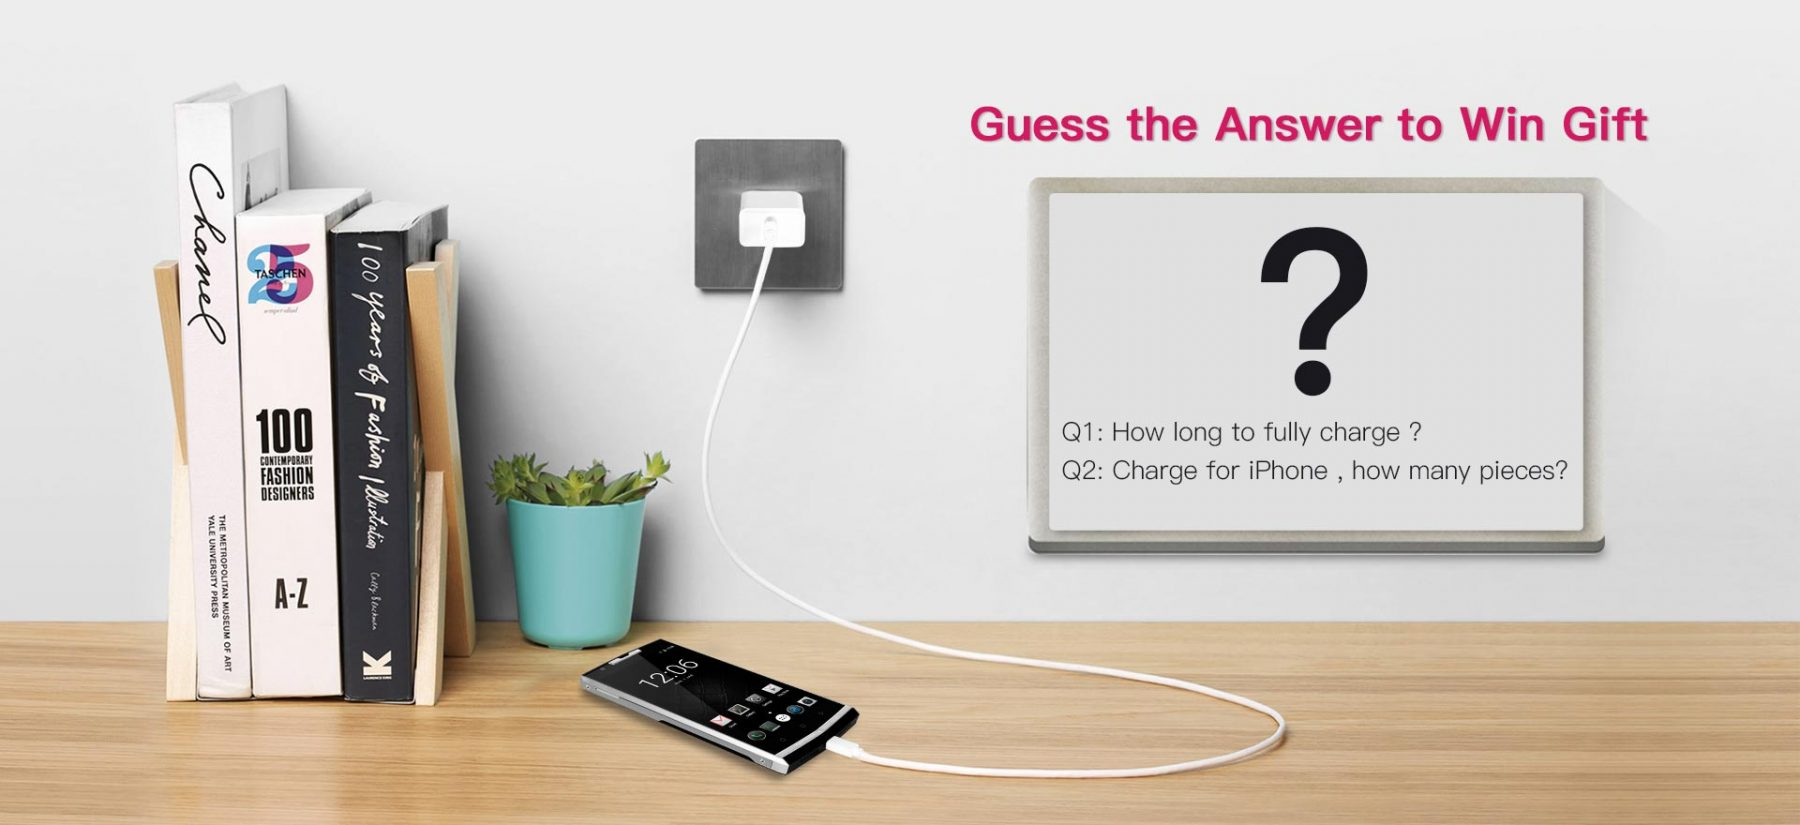 K10000-Pro-guess answer to win gift